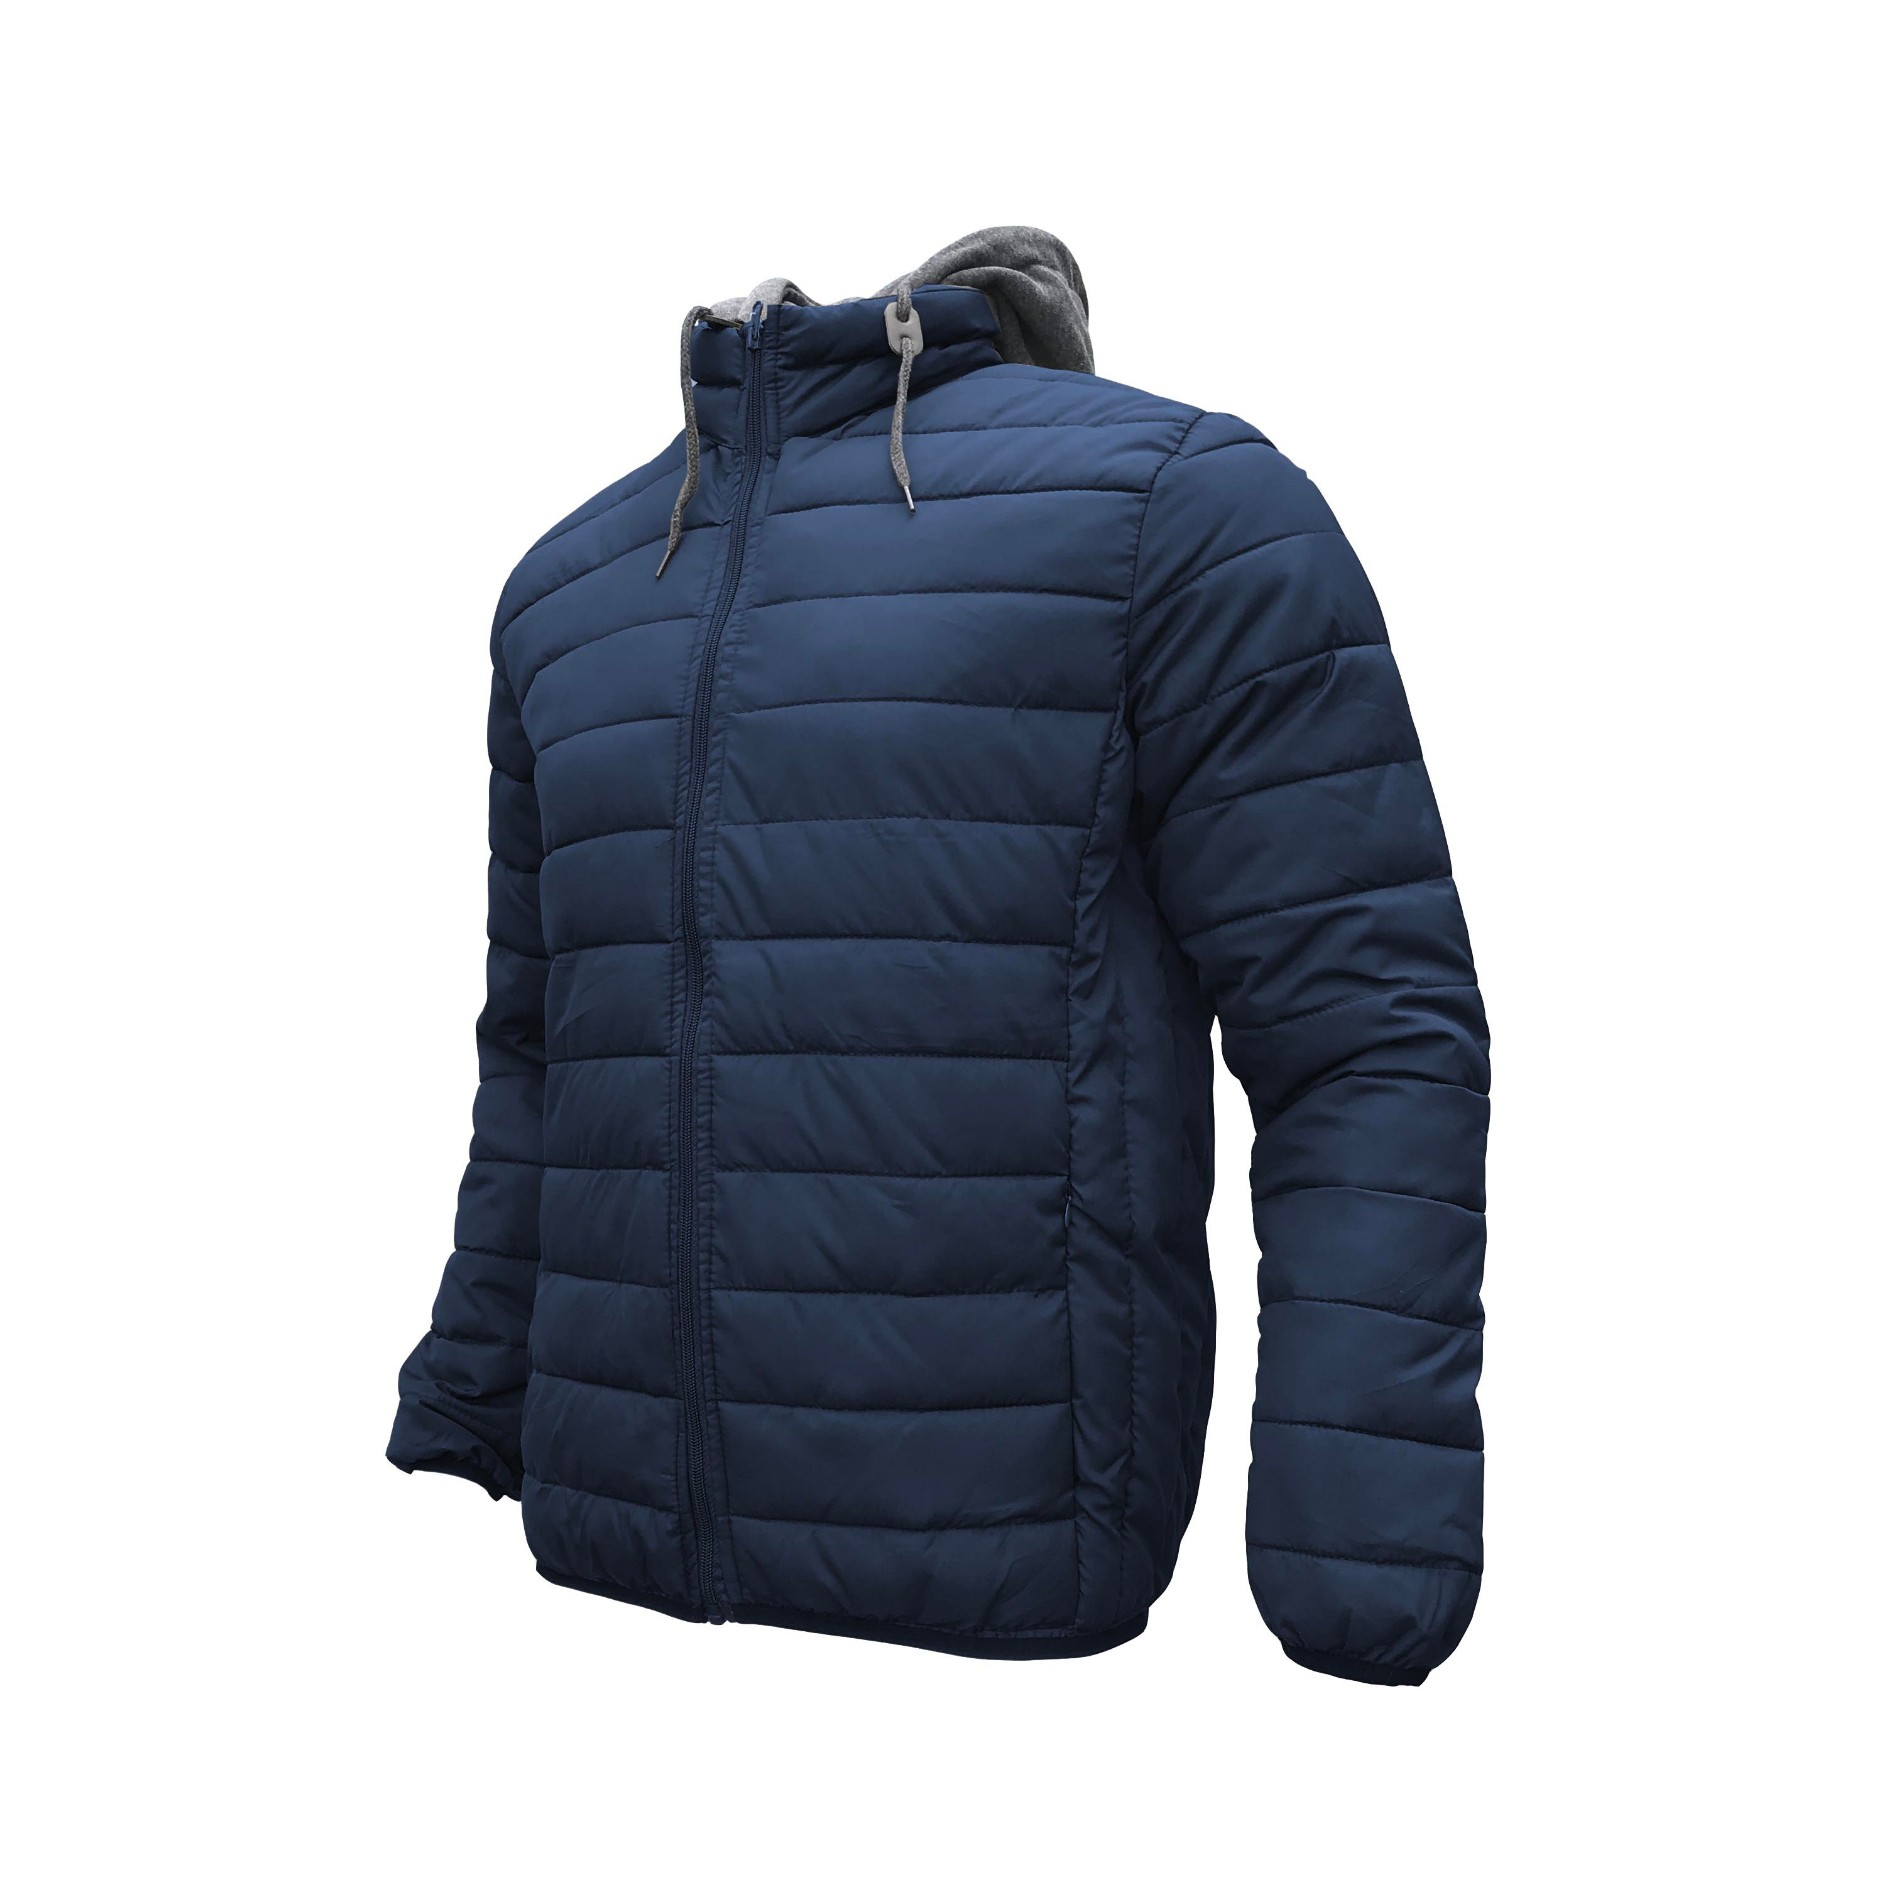 Men's Hooded Padding Jacket Winter Zipper Quilted Coat Manufacturers, Men's Hooded Padding Jacket Winter Zipper Quilted Coat Factory, Supply Men's Hooded Padding Jacket Winter Zipper Quilted Coat